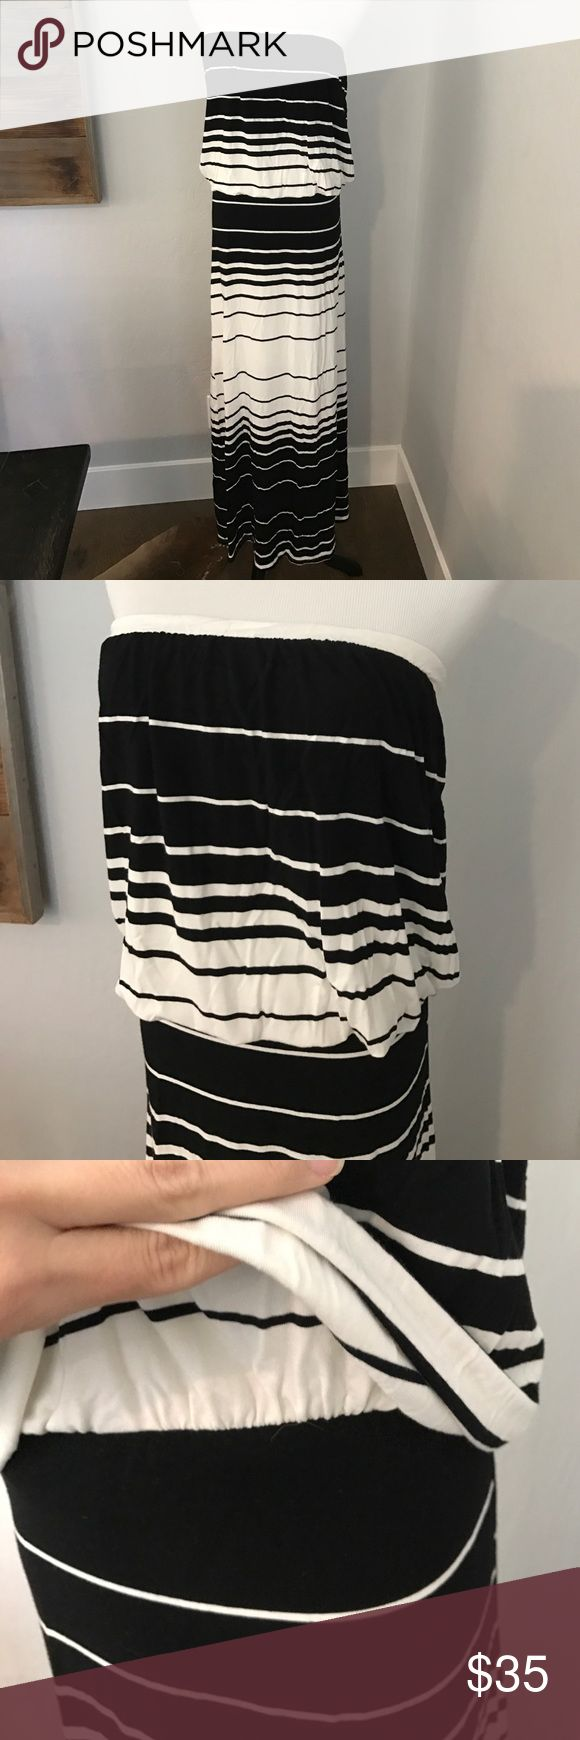 Black and white strip summer dress This is a small, black and white stripe summer maxi dress. Bought this from VICI. The middle is cinched and the top half is lined. Excellent condition. Dresses Maxi